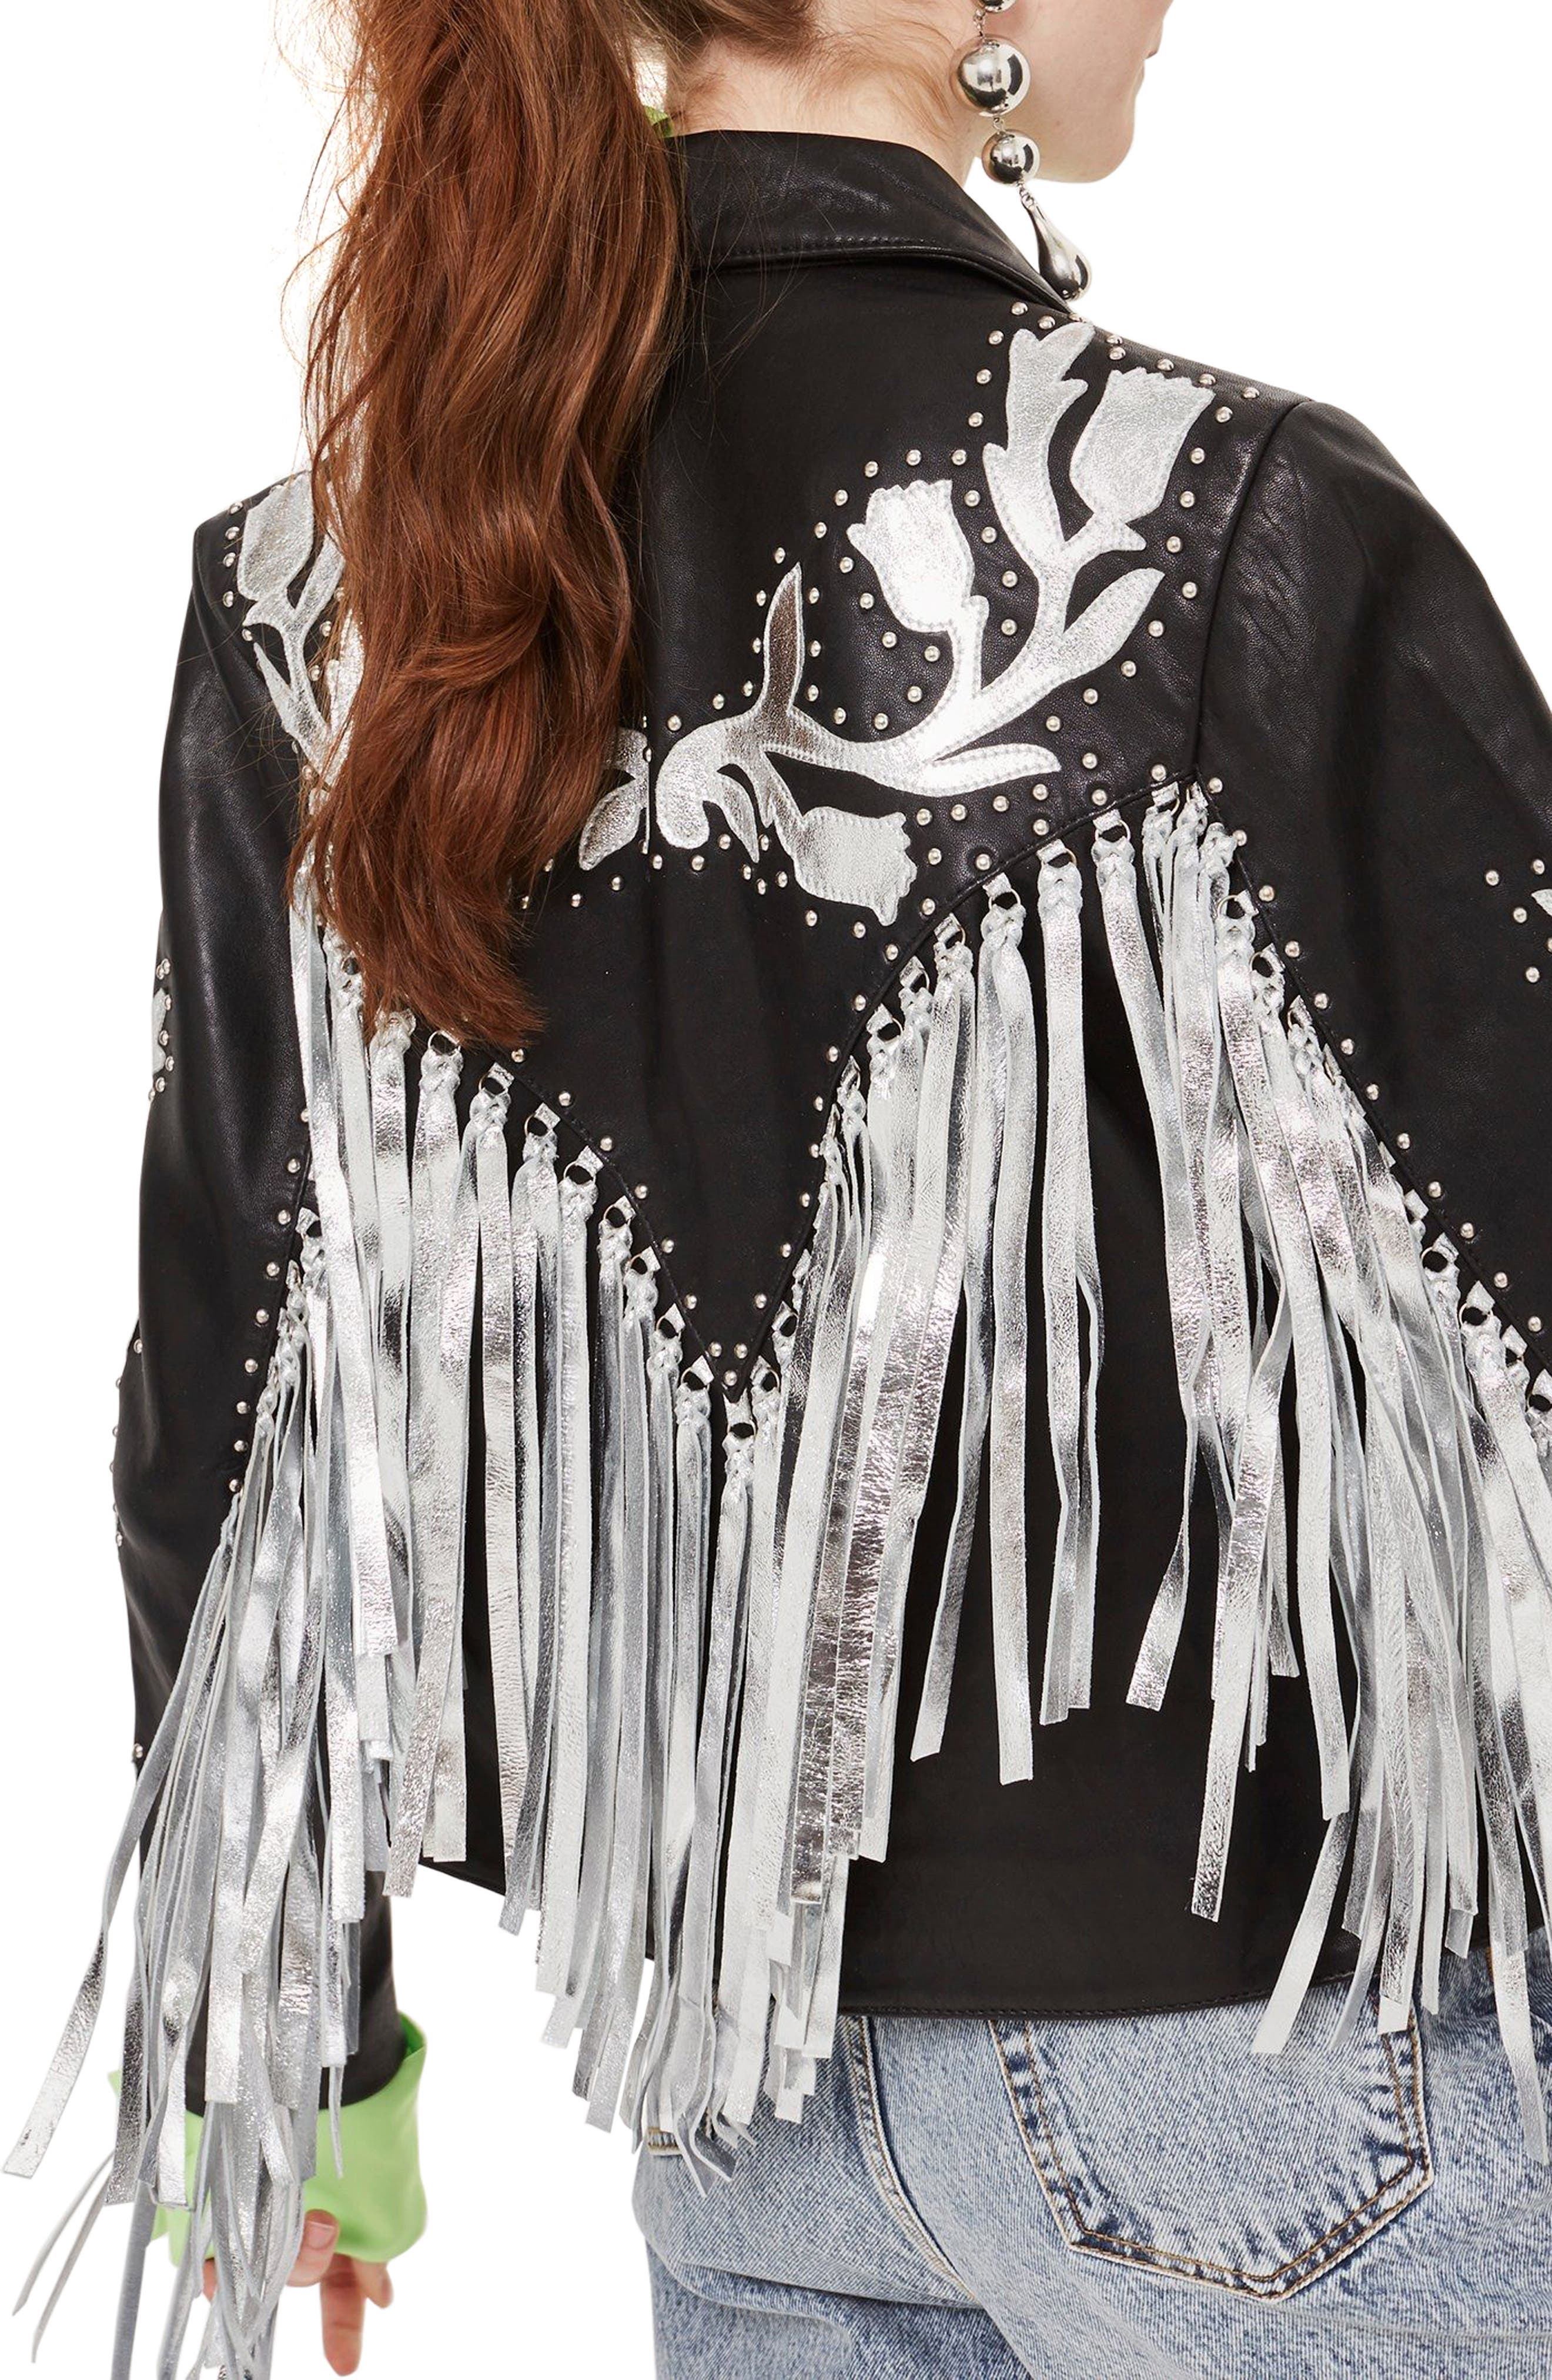 Austin Floral Silver Fringed Leather Jacket,                             Alternate thumbnail 2, color,                             001